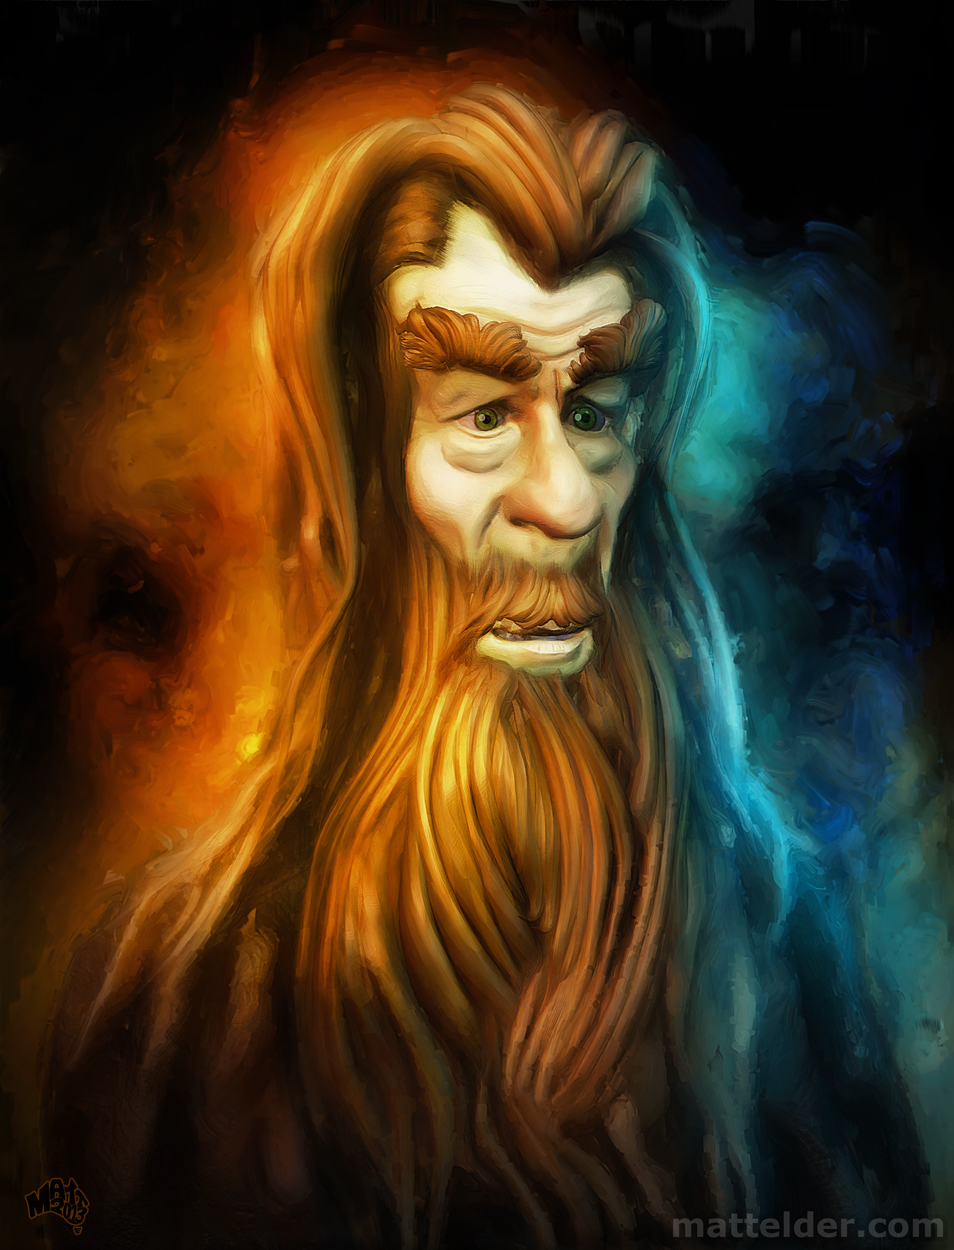 Gandalf - Ian McKellen Caricature Digital Art Piece